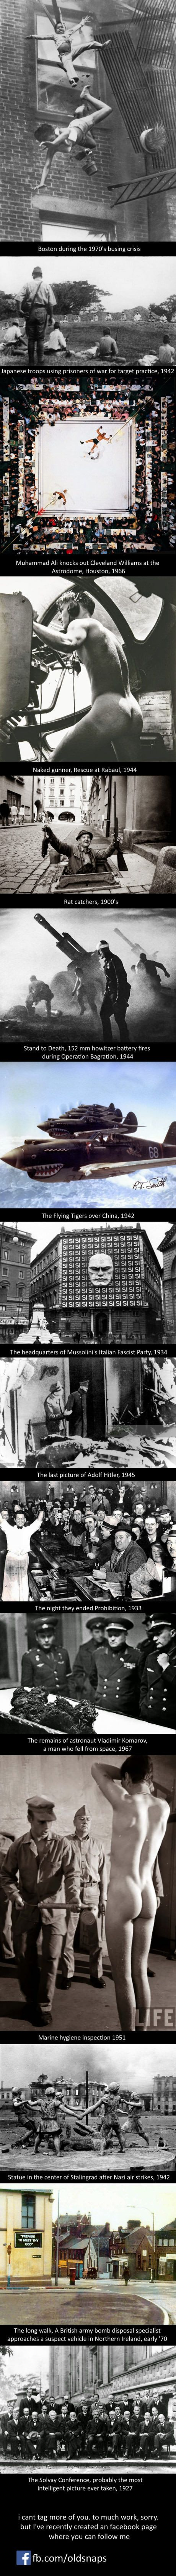 Best Conspiracies Fun Facts Oh My Images On Pinterest Wtf - 15 amazing facts about the internet